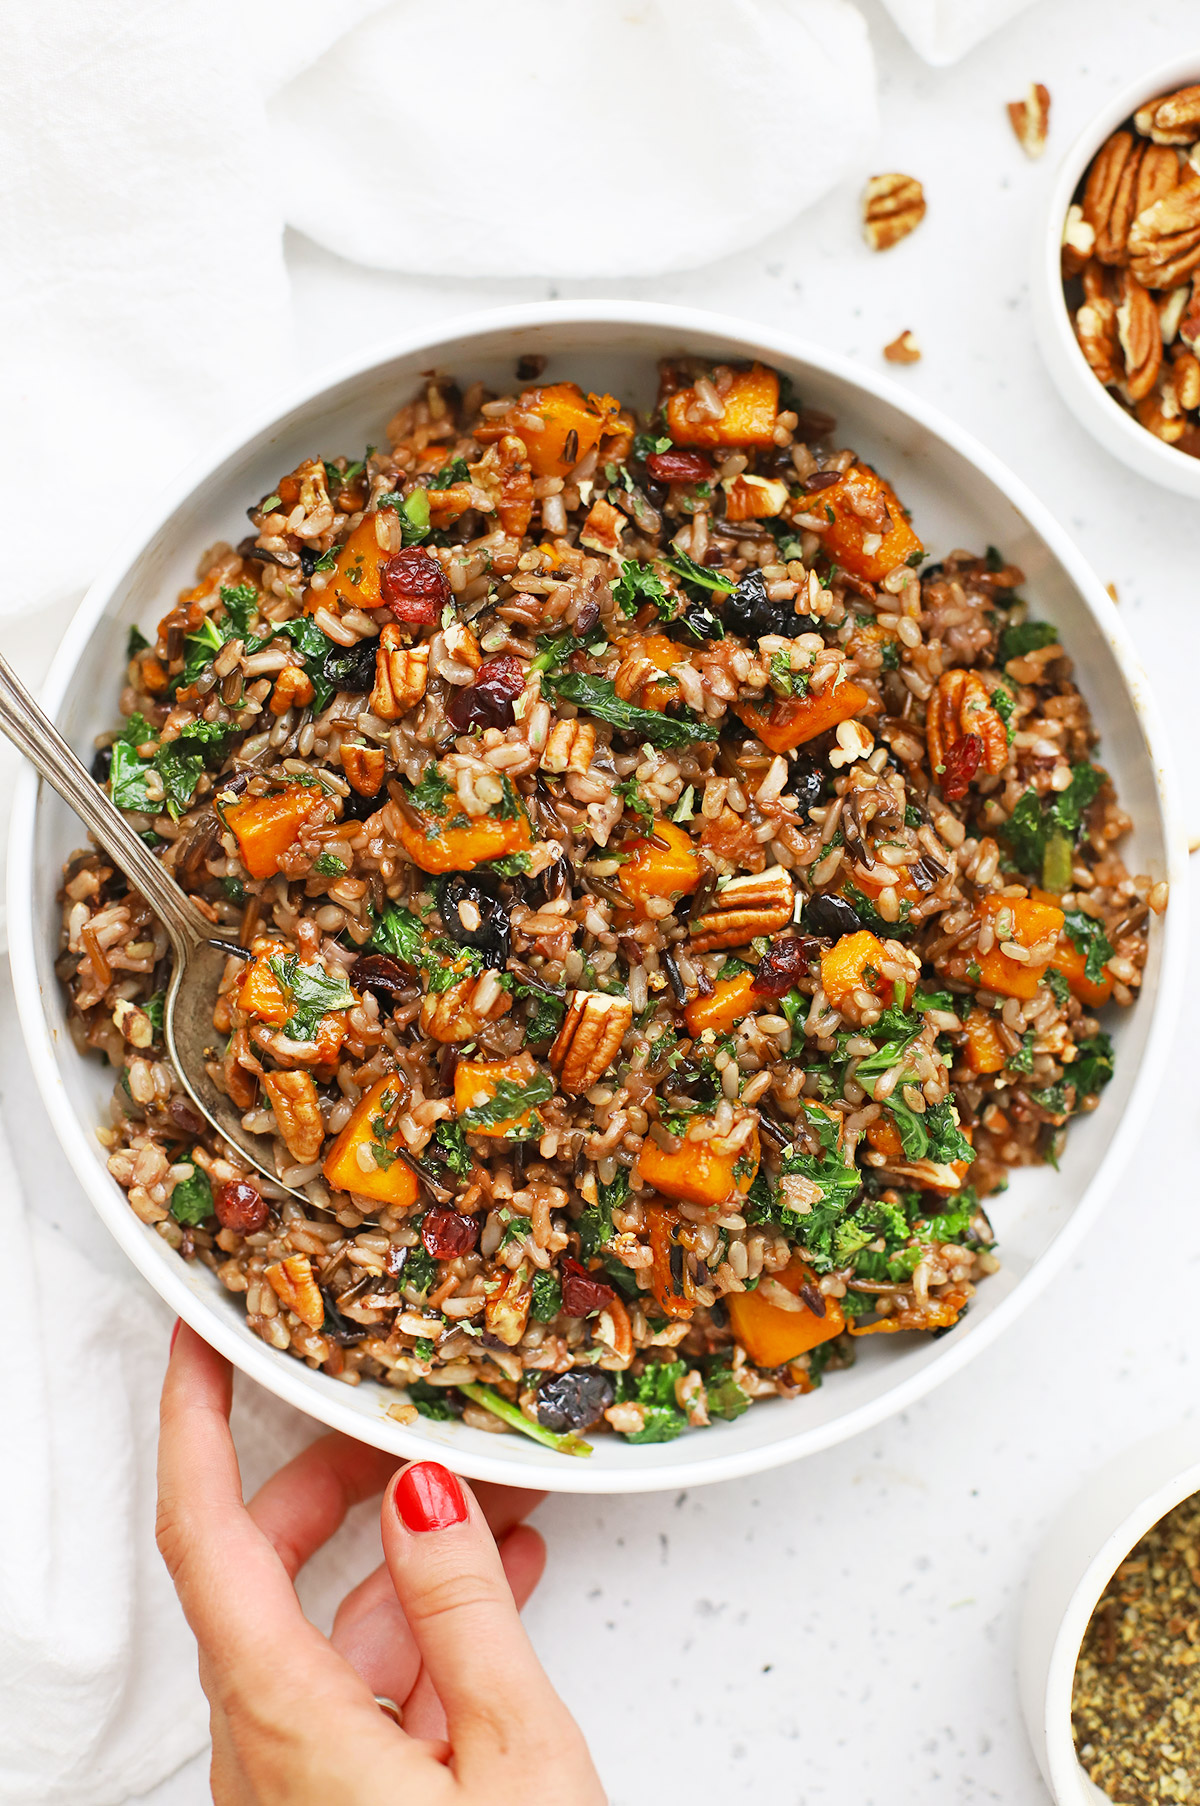 Overhead view of setting down a white bowl of Wild Rice Pilaf with Butternut Squash, Kale, Dried Cranberries, and Pecans